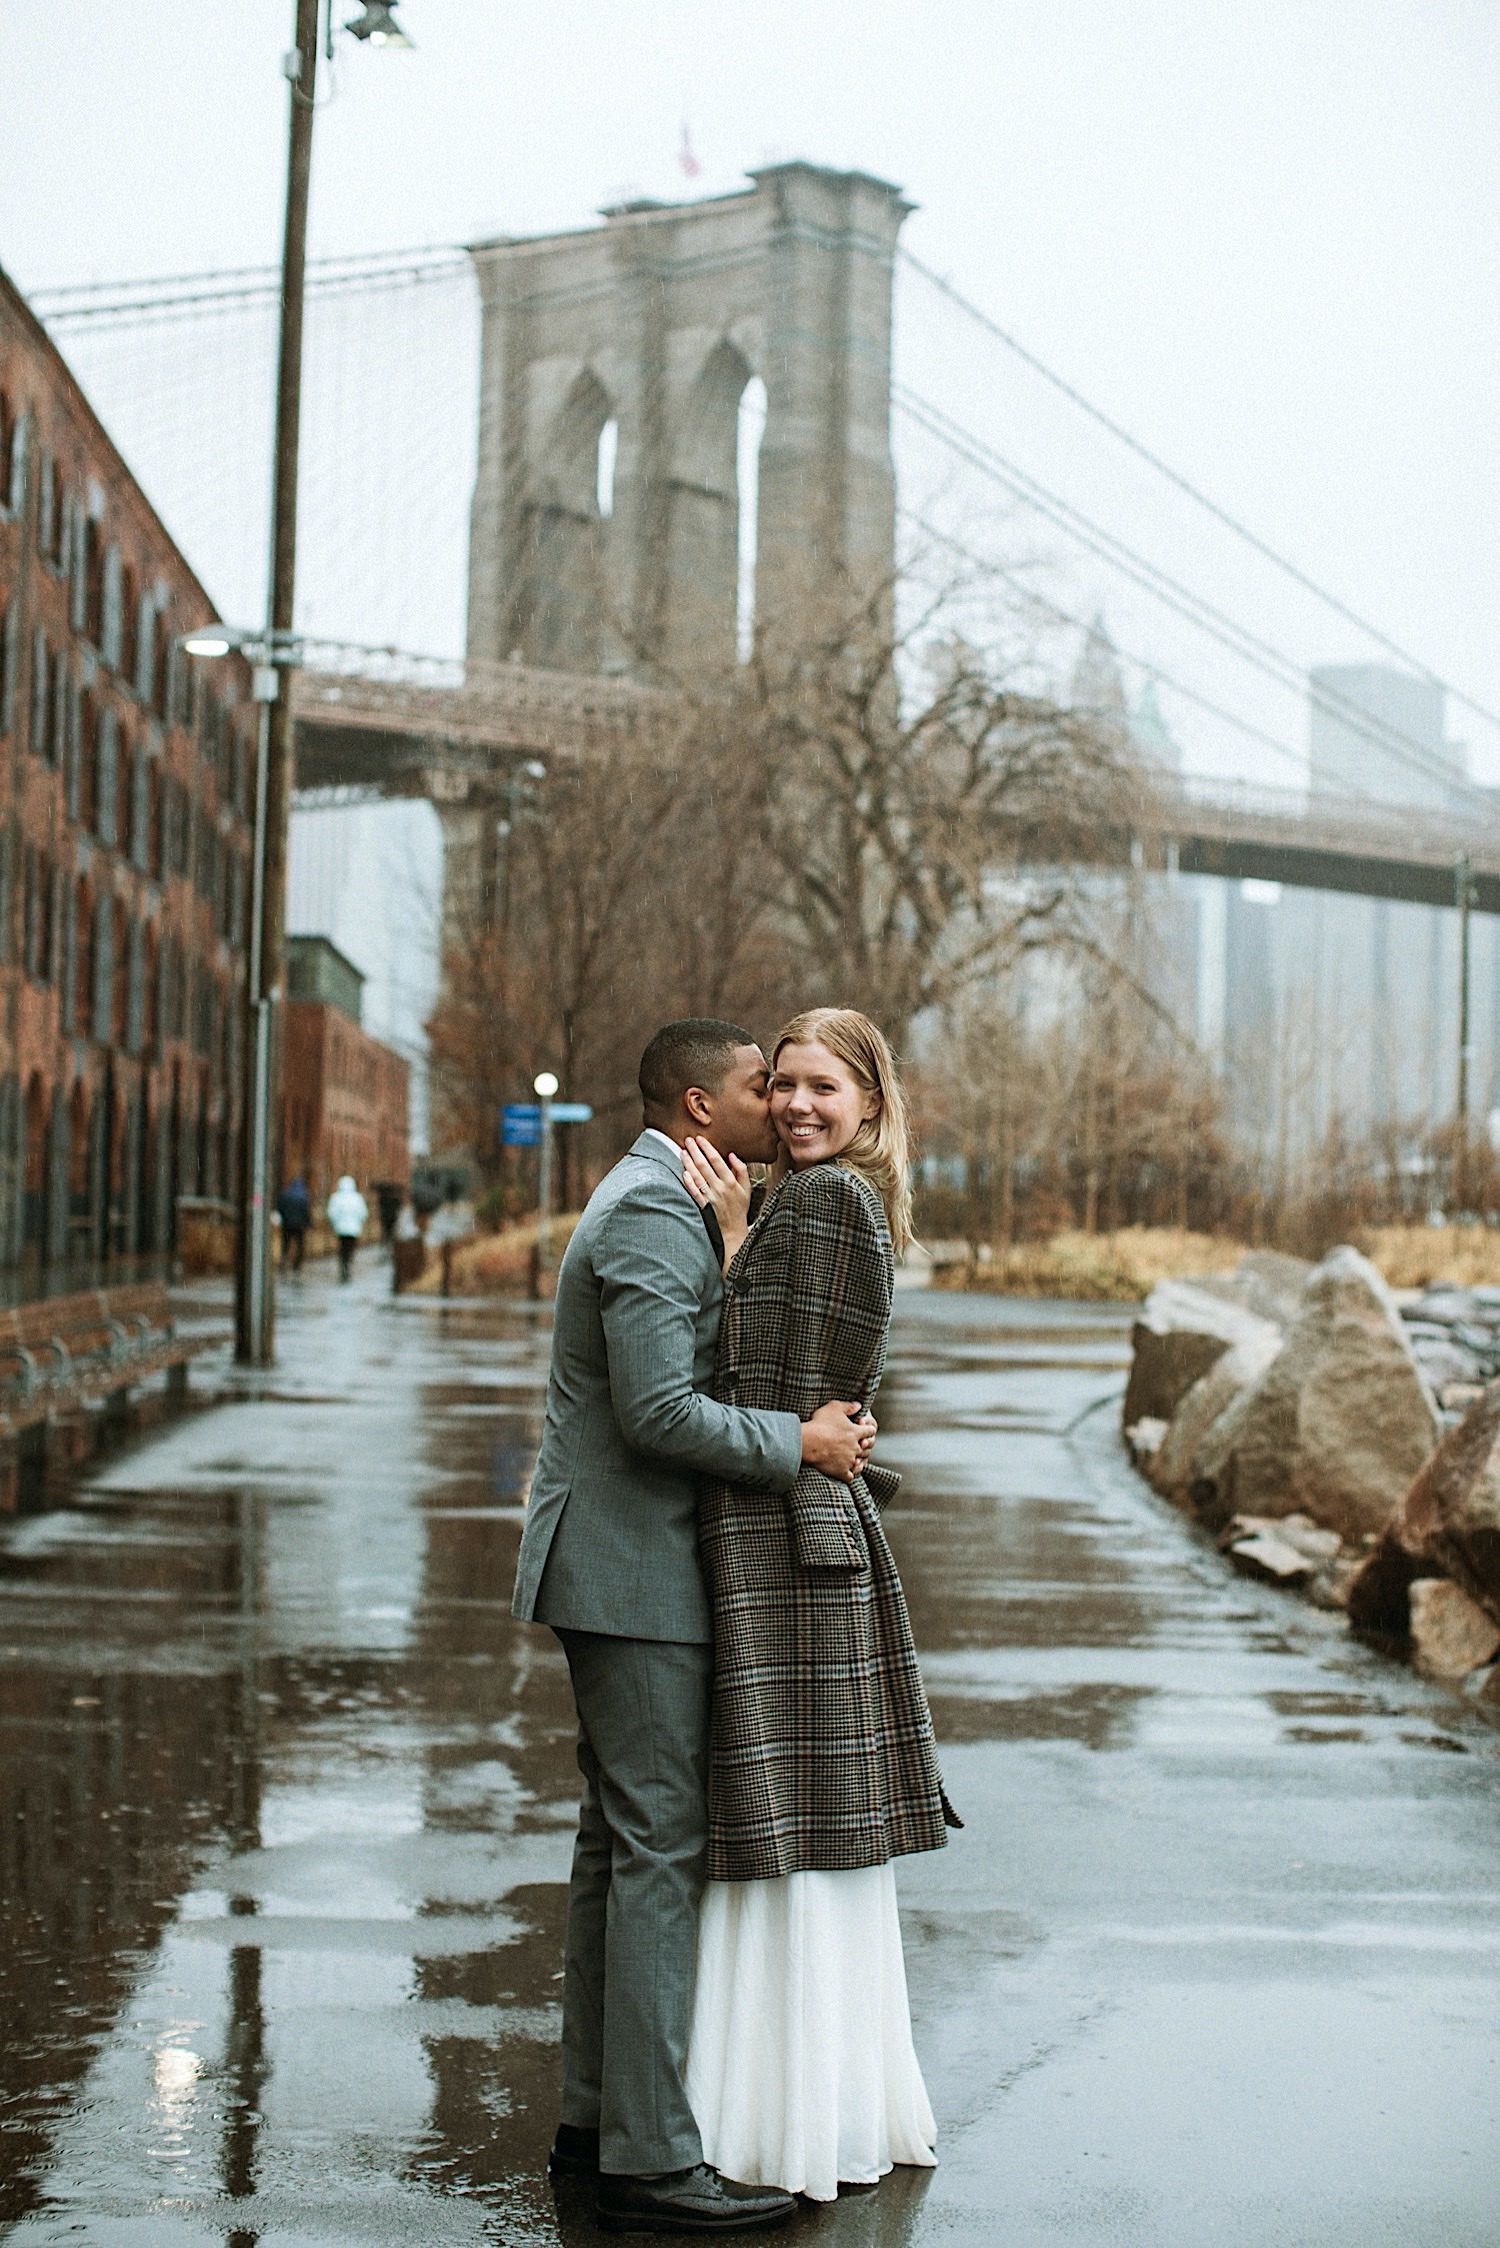 DUMBO Wedding Photography - Groom kisses bride on the cheek with Brooklyn Bridge in the Background